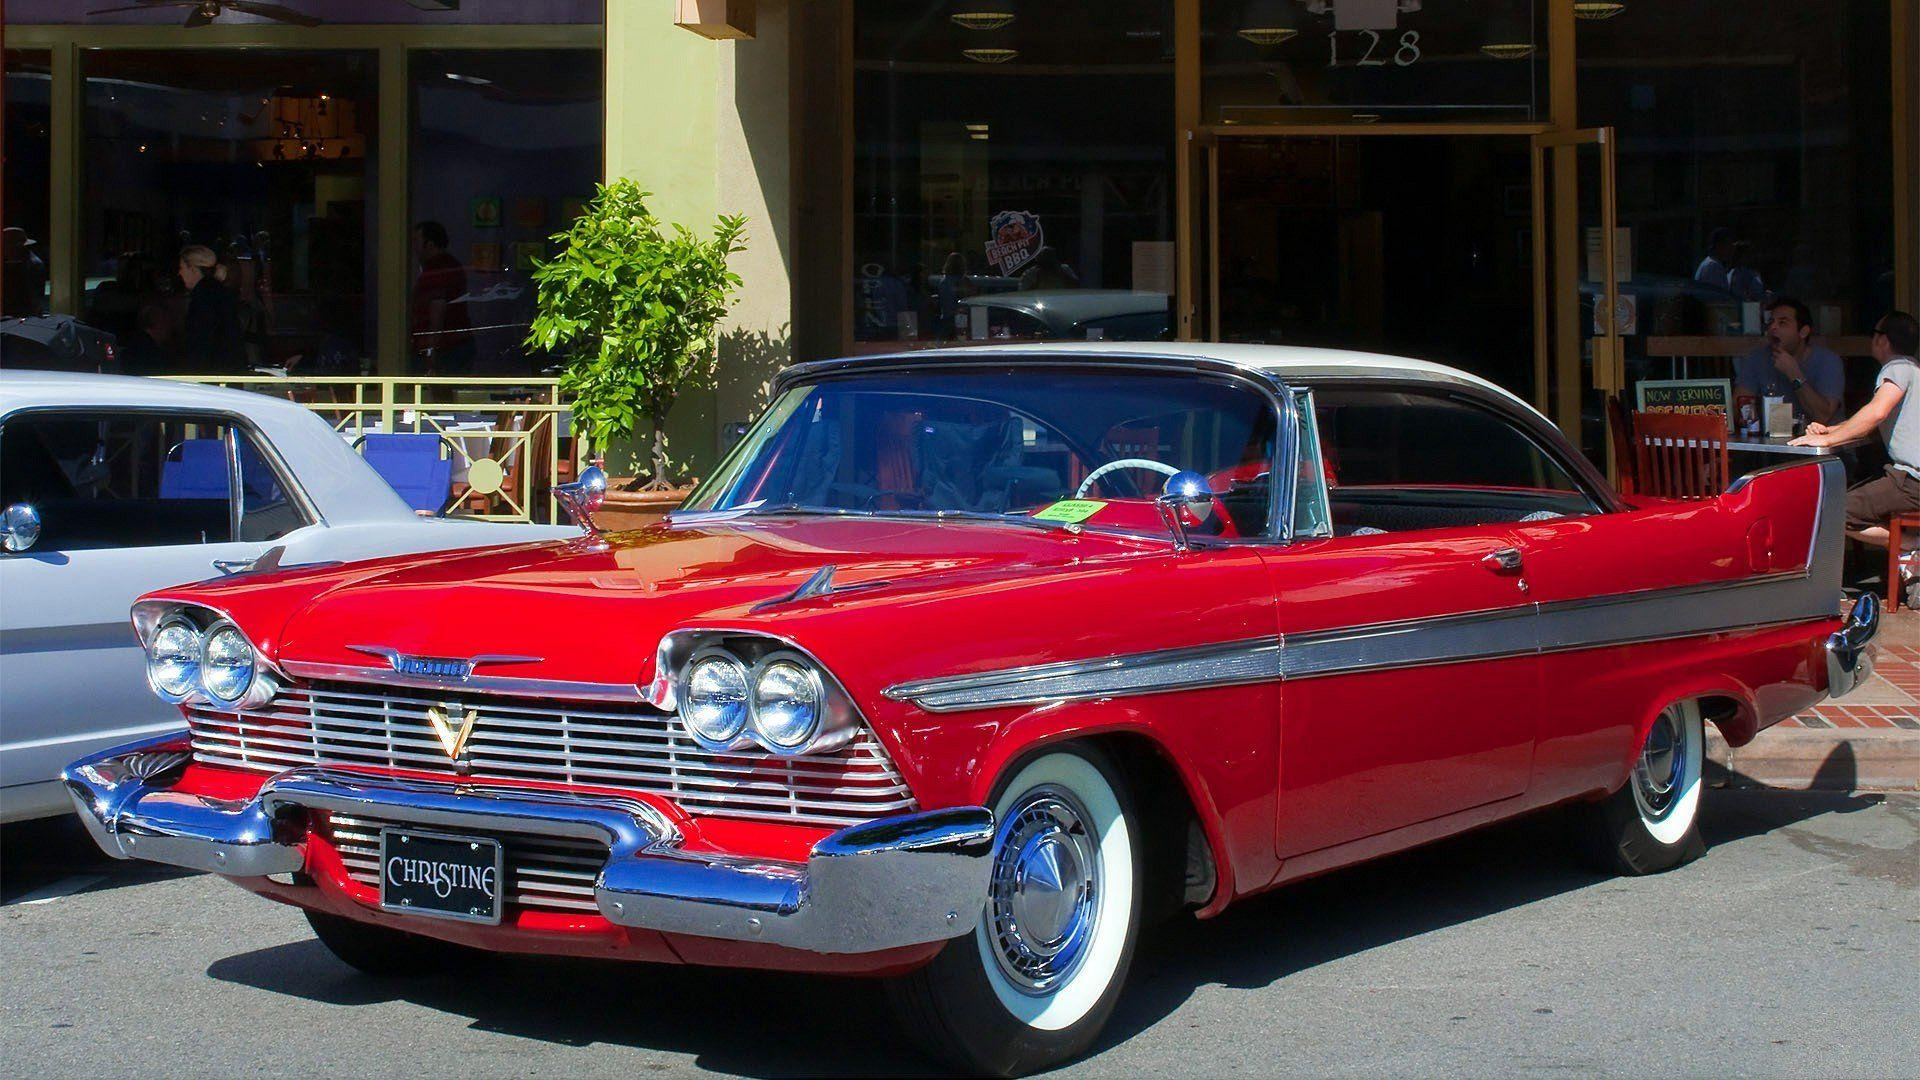 Cars Plymouth Fury Christine (movie) wallpaper | 1920x1080 ...